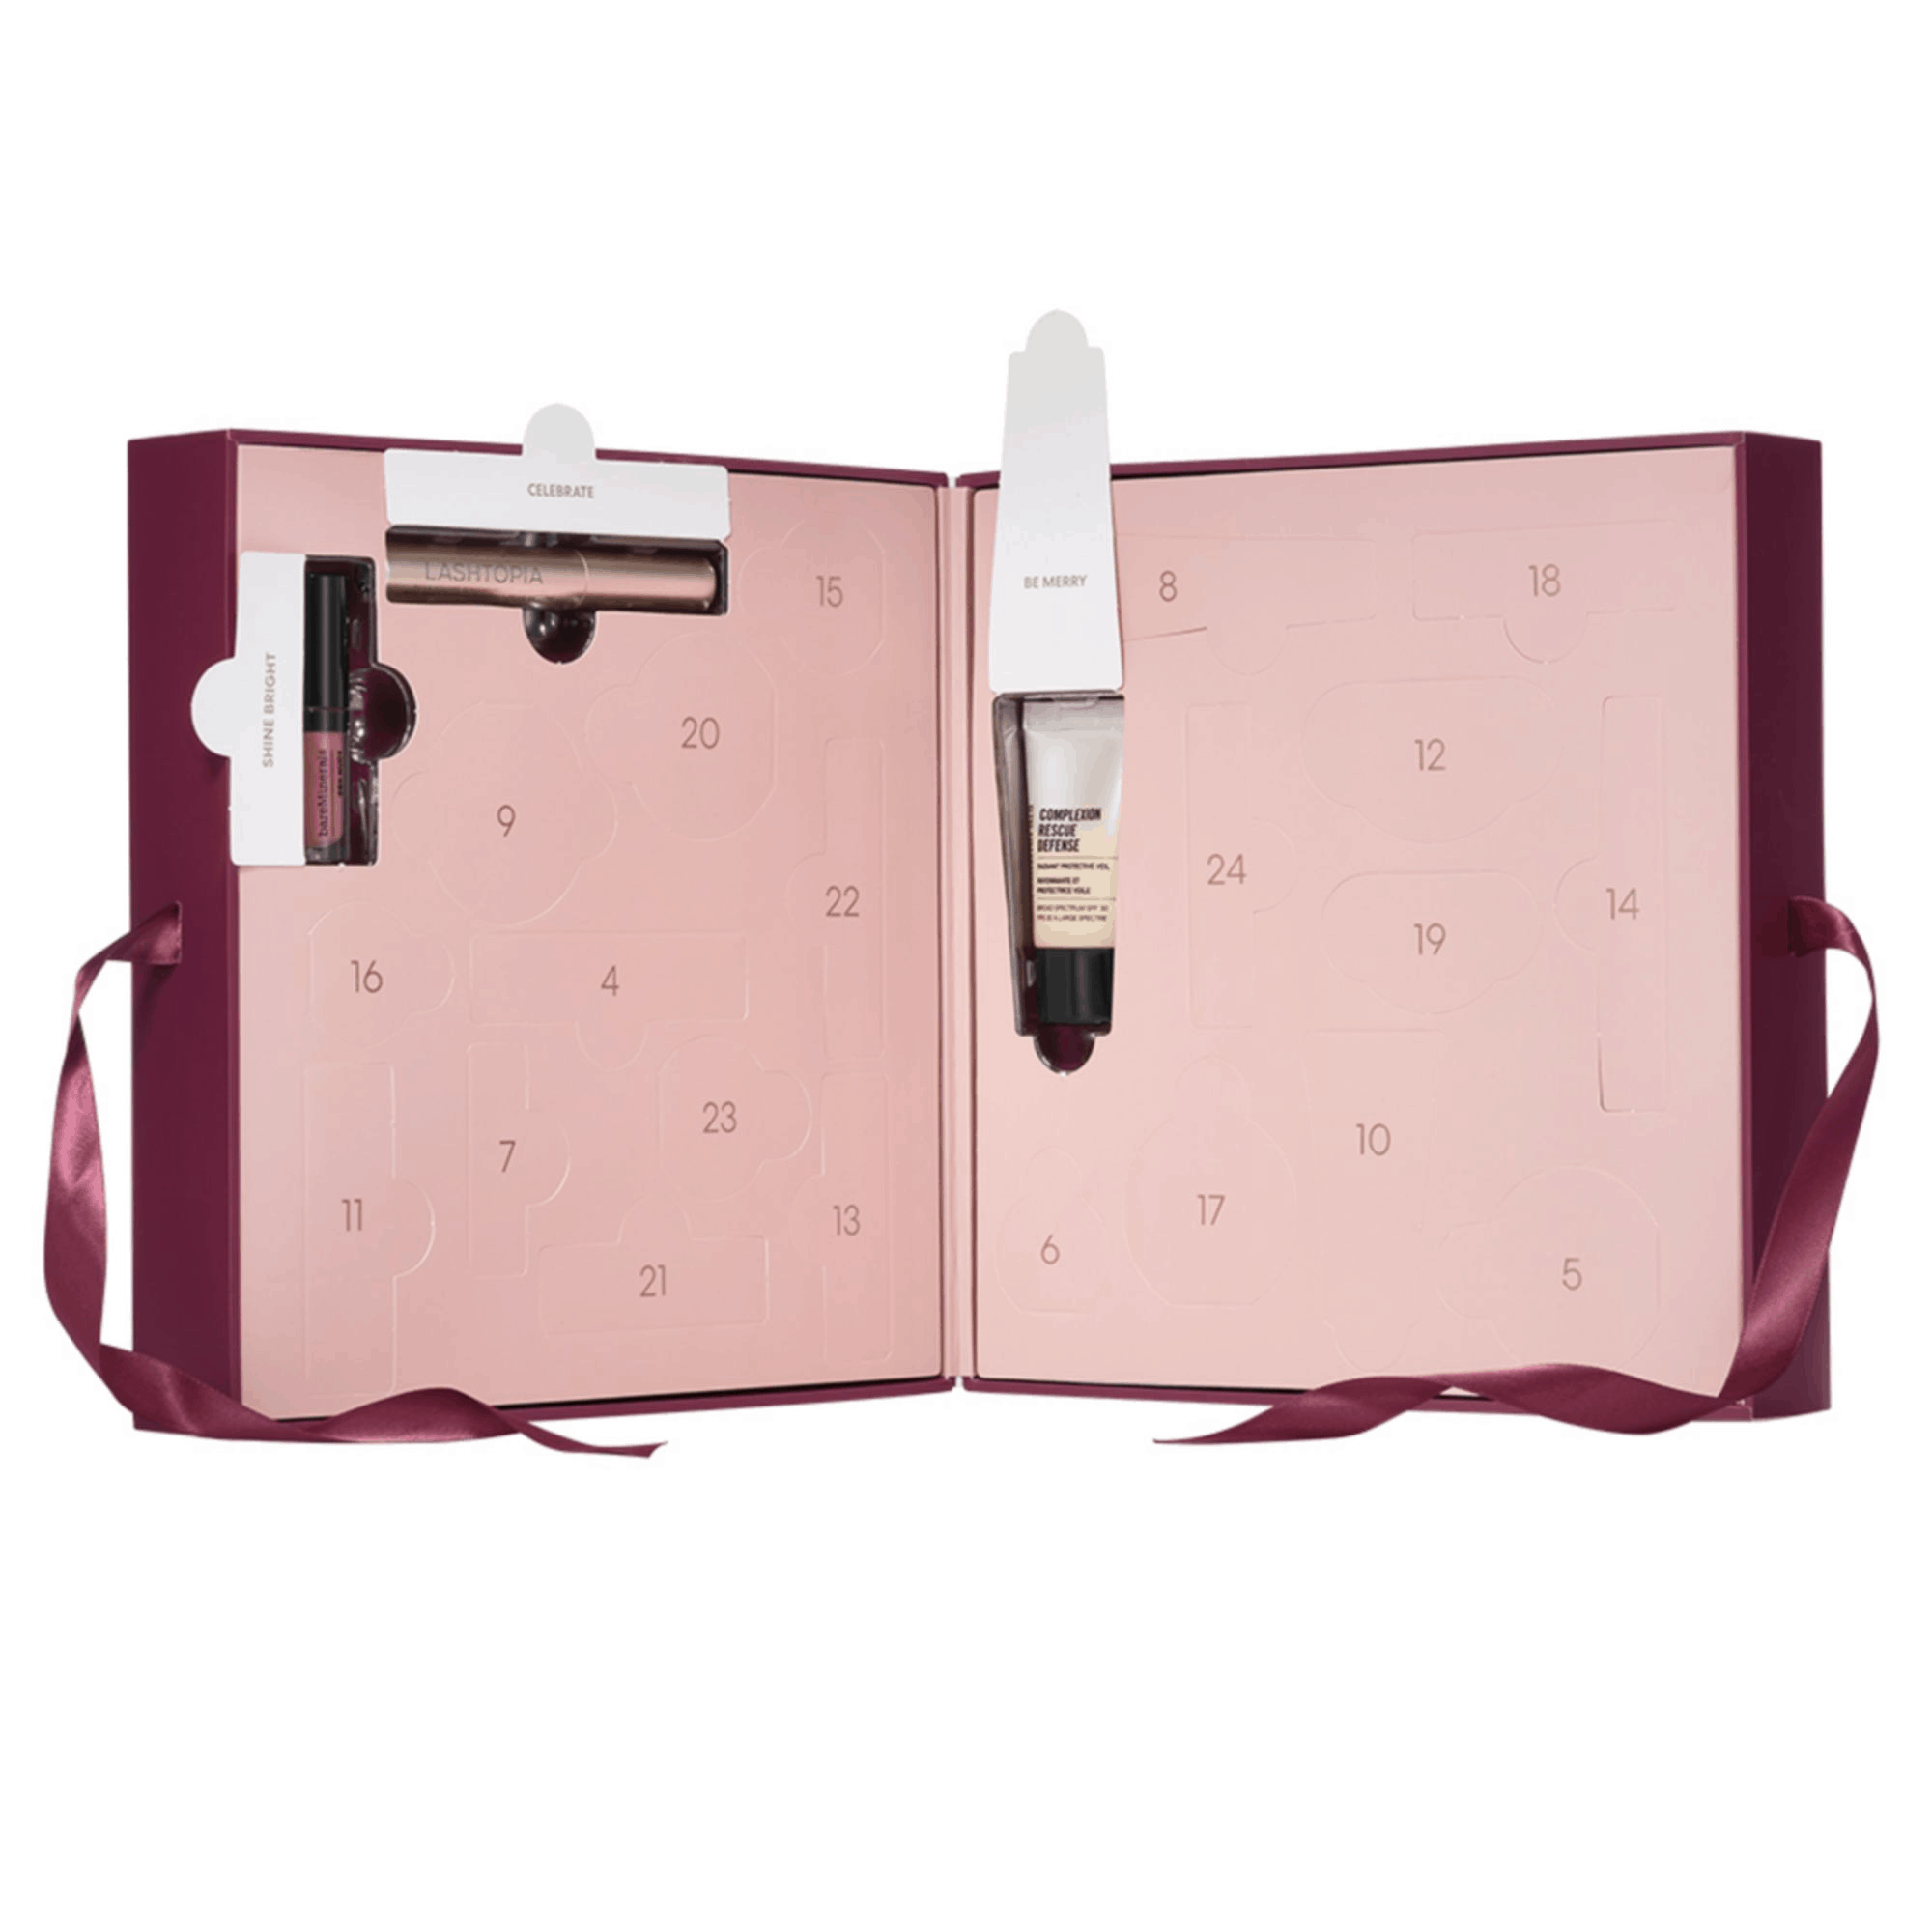 bareMinerals 2019 Beauty Advent Calendar Available Now + Full Spoilers!